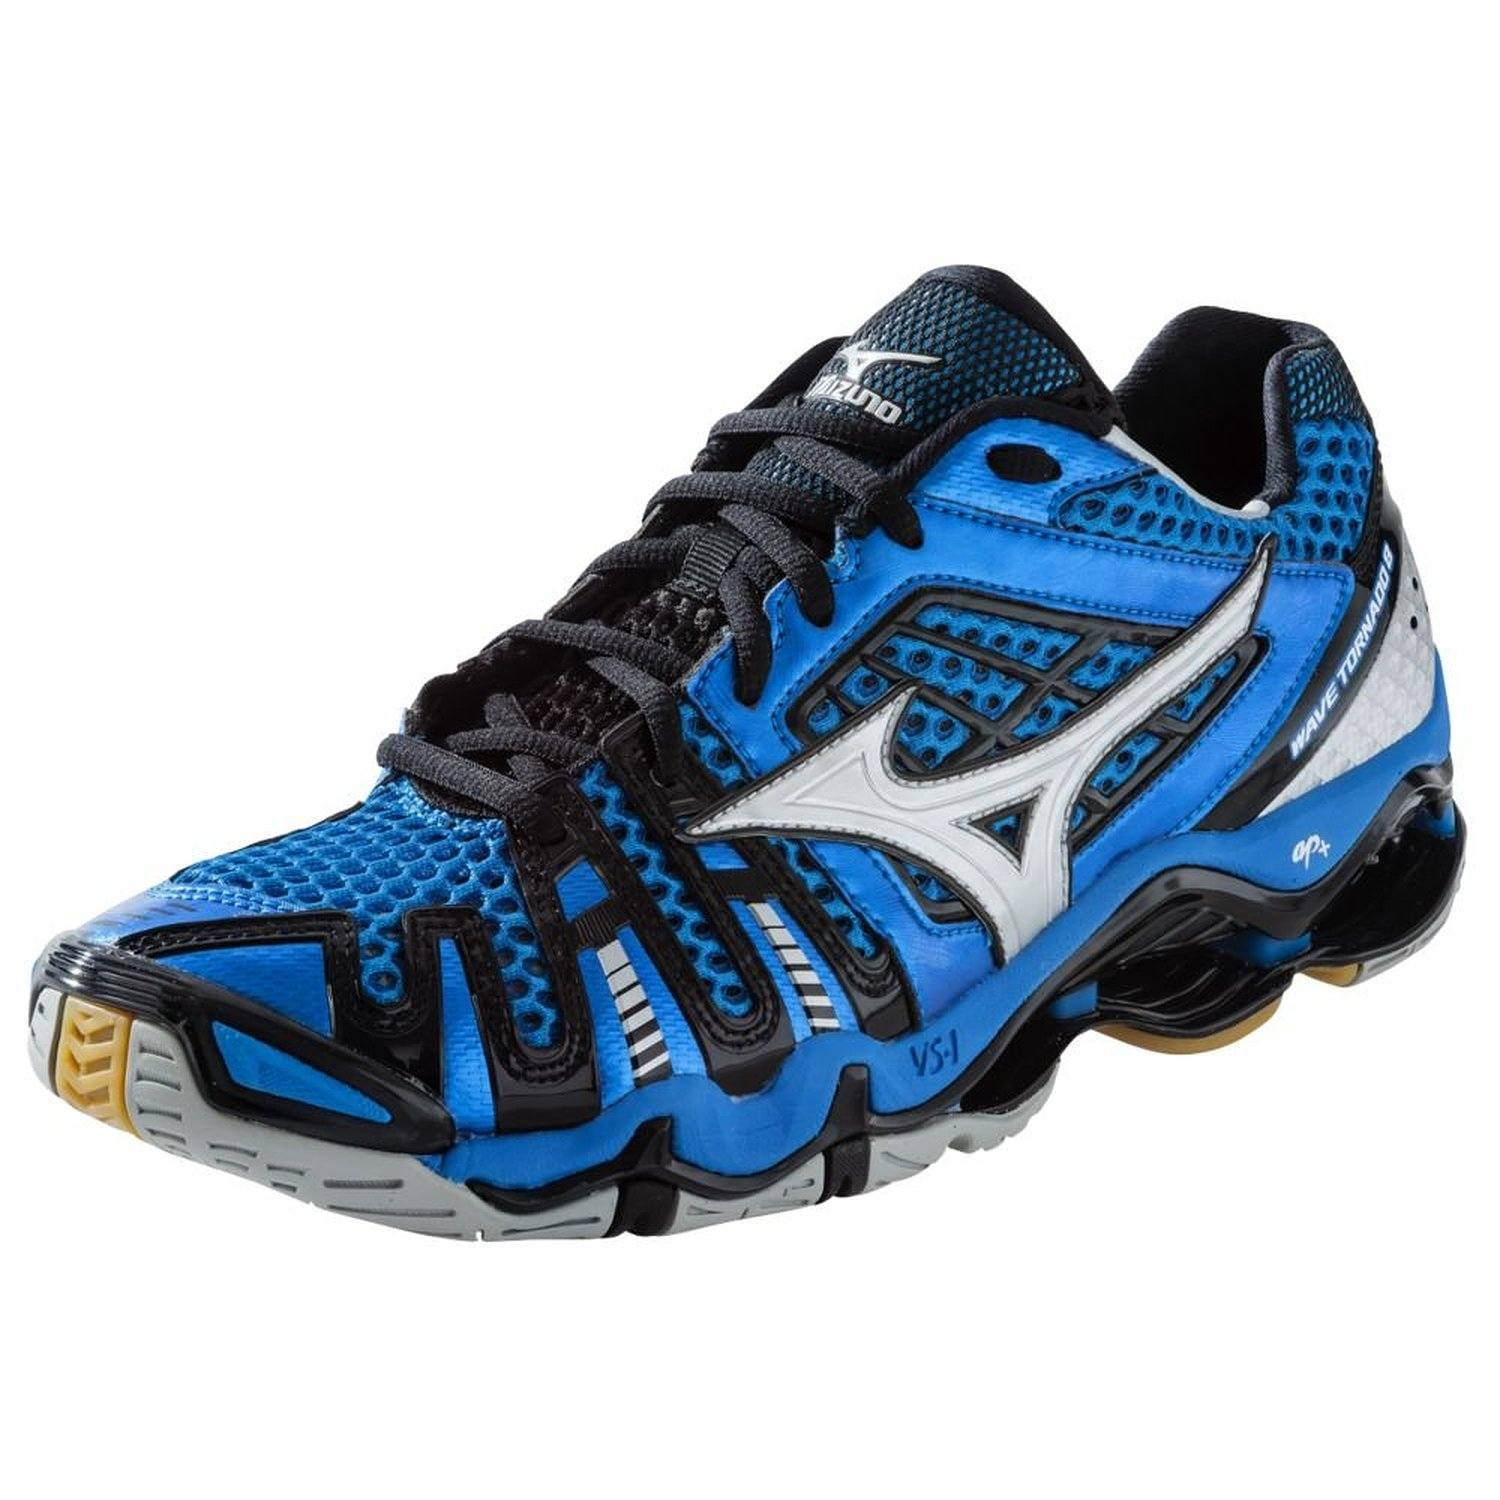 Mizuno Wave Tornado 8 - Blue